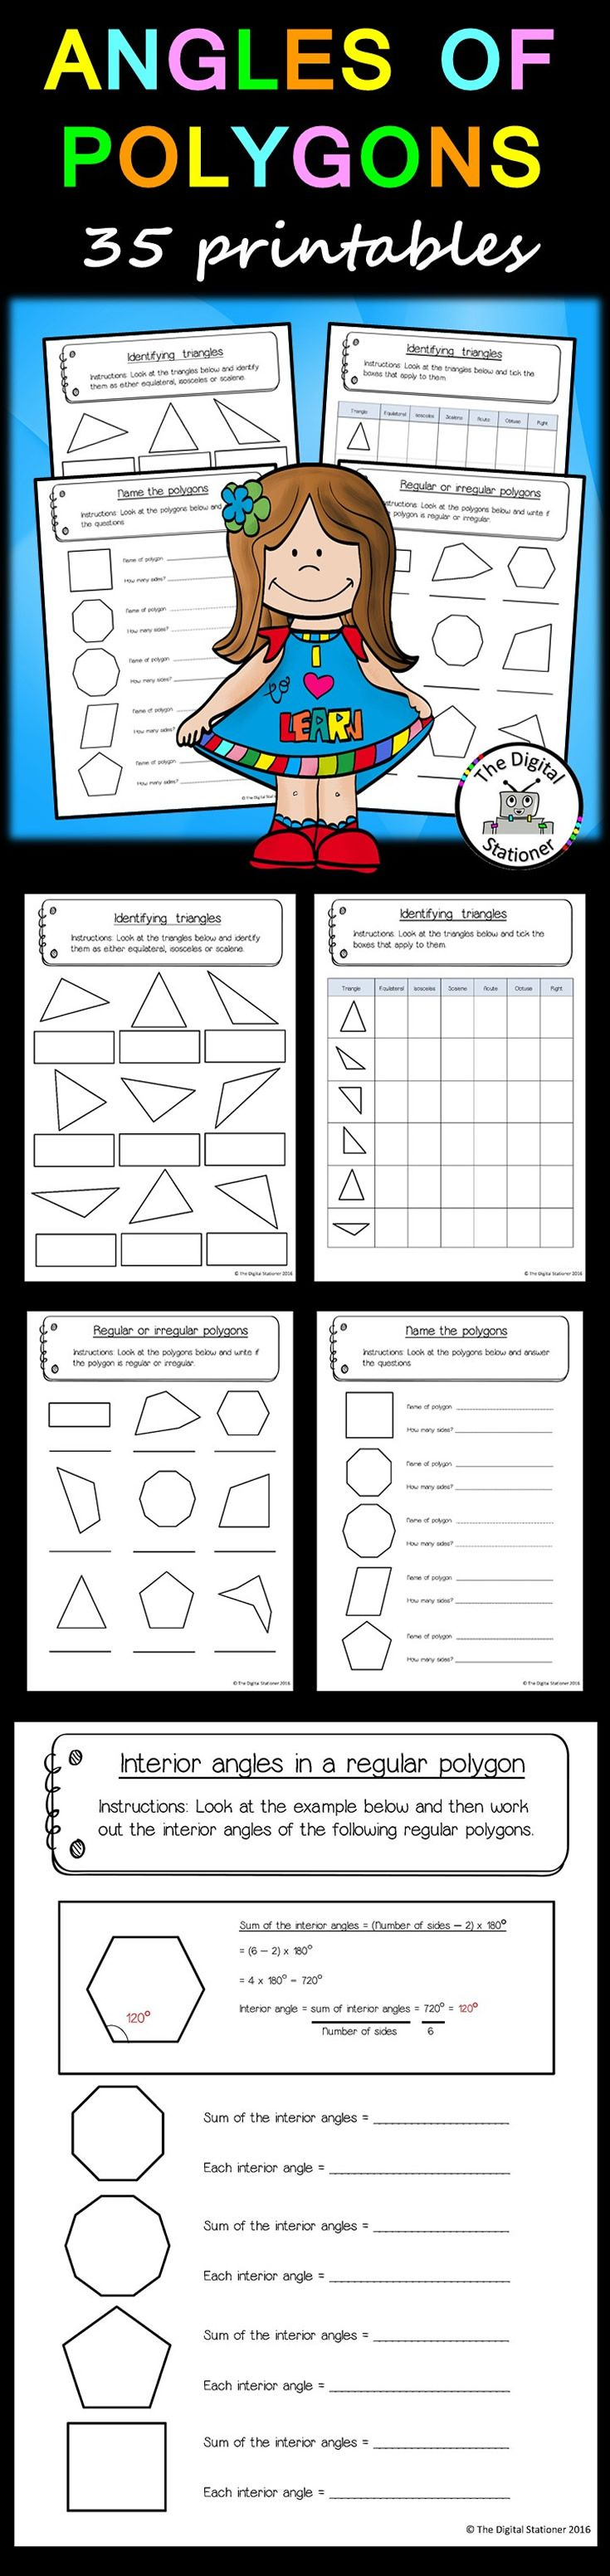 Angles of Polygons 35 printables Math resources